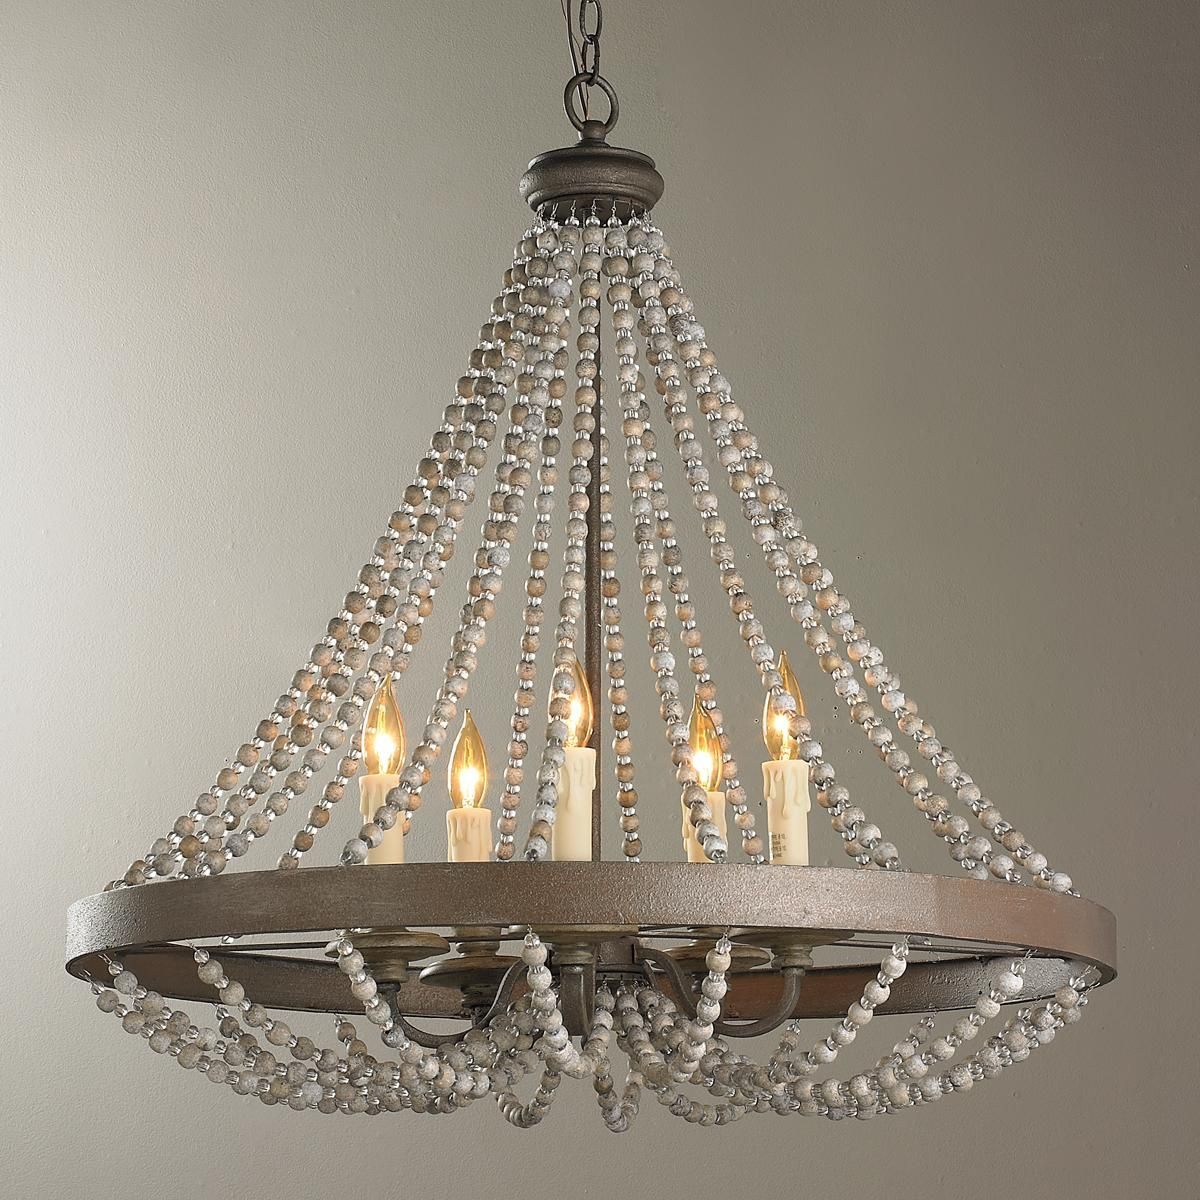 Rustic French Country Beaded Chandelier | Rustic Designs In Regarding Ladonna 5 Light Novelty Chandeliers (Gallery 17 of 30)